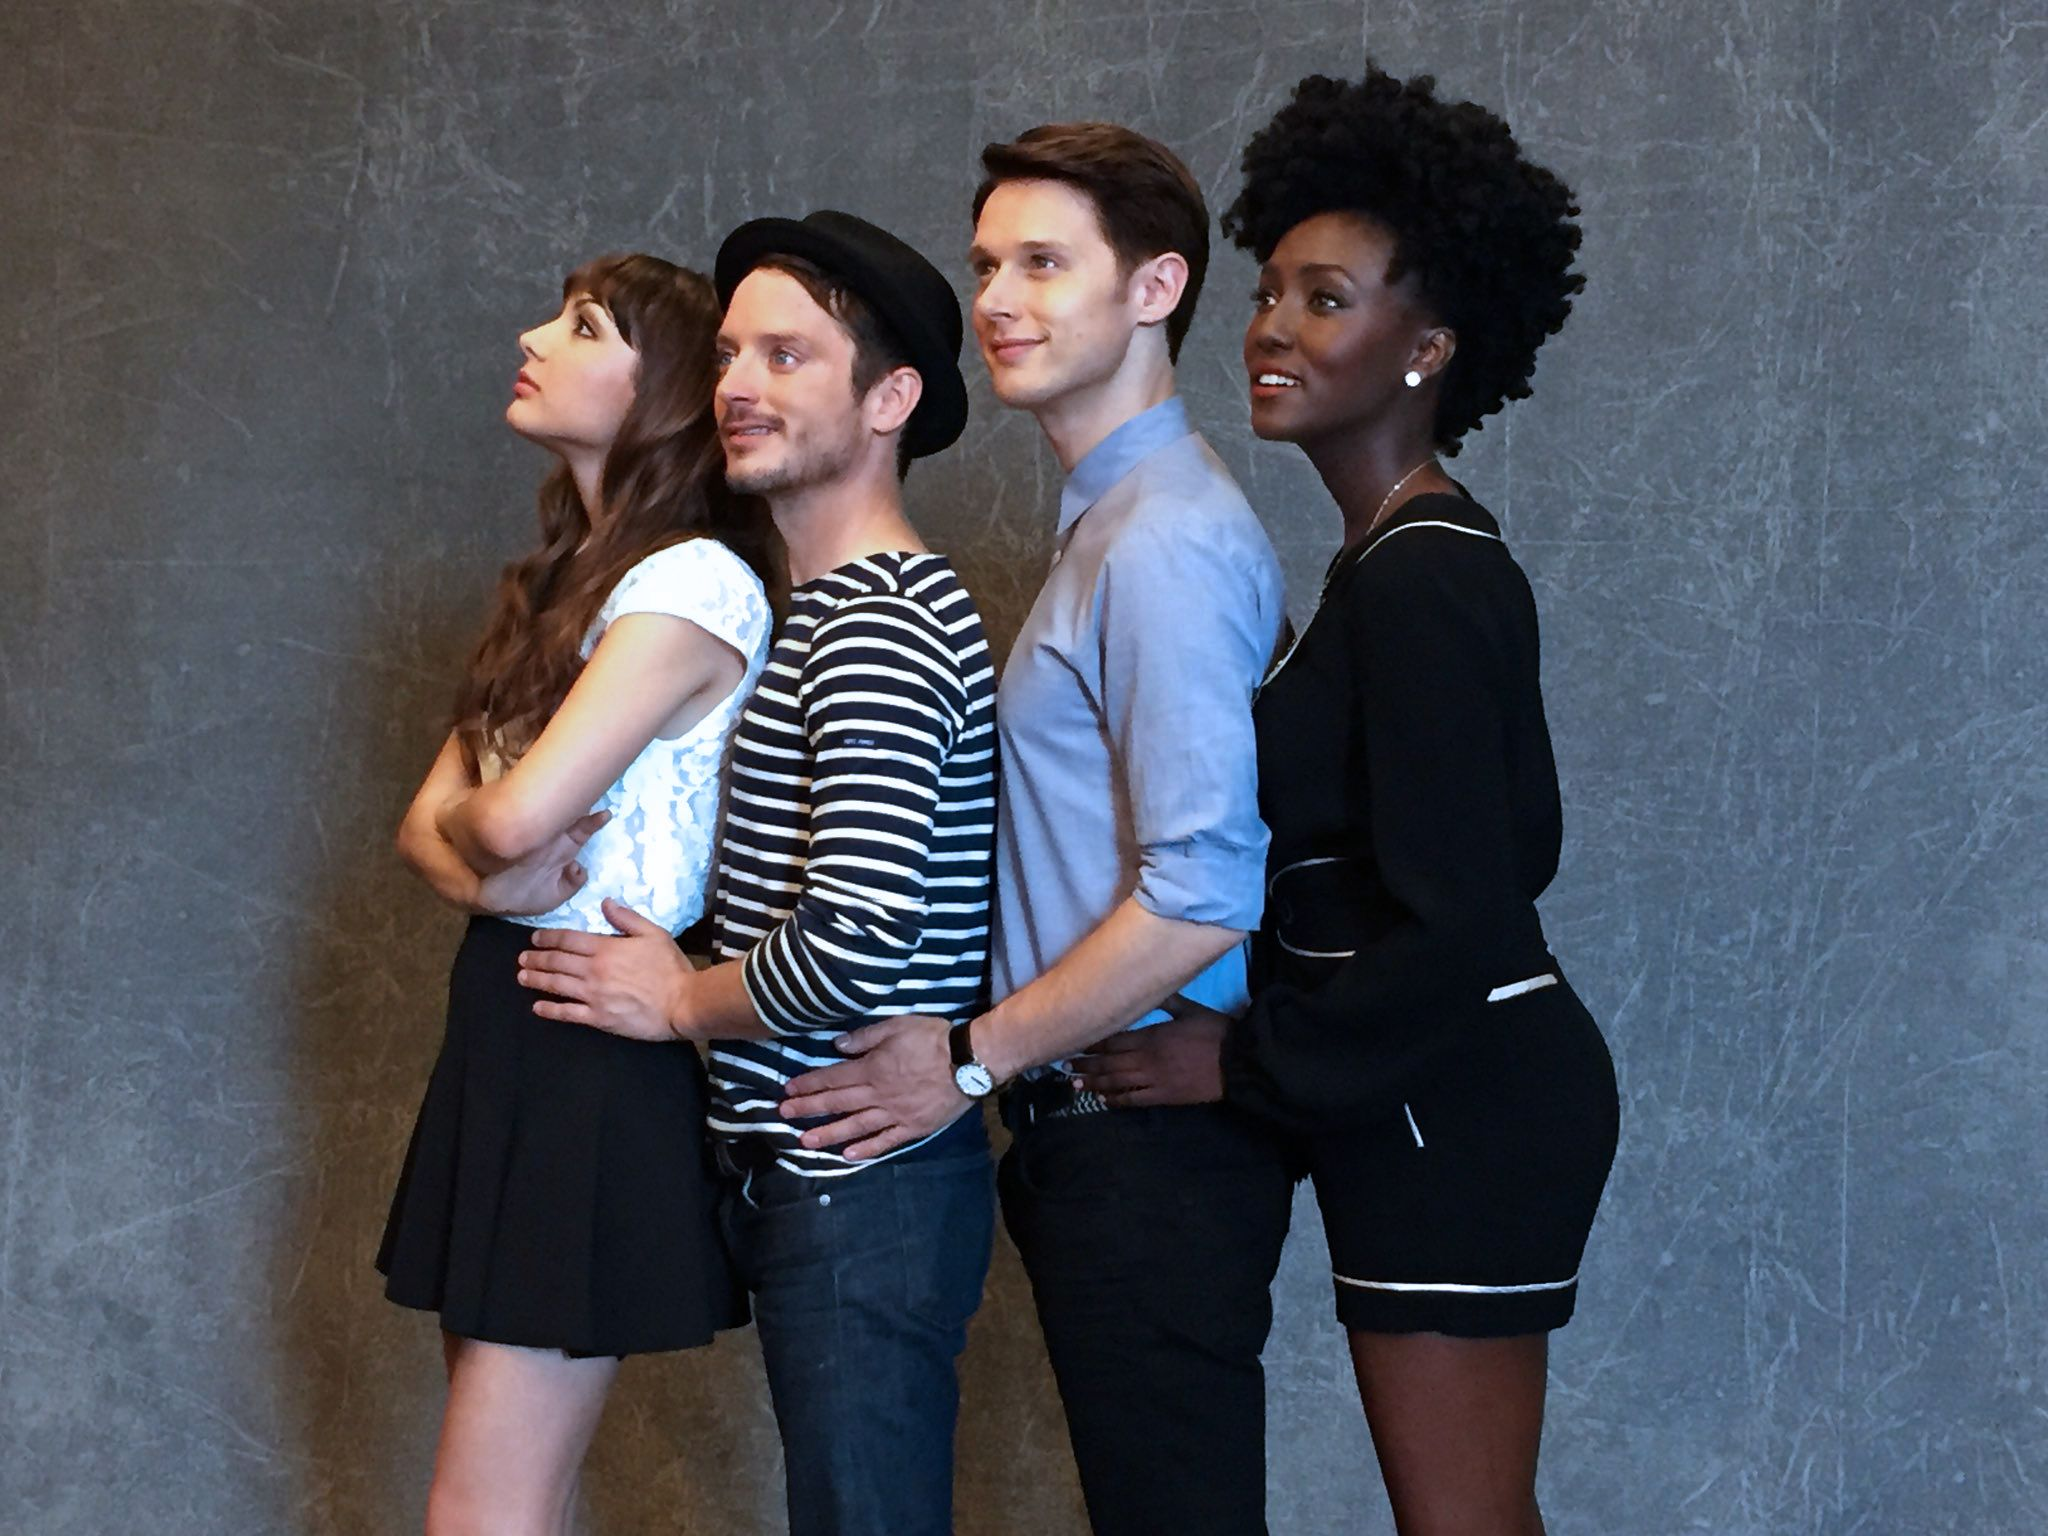 Dirk Gently's Holistic Detective Agency #photoshoot #cast